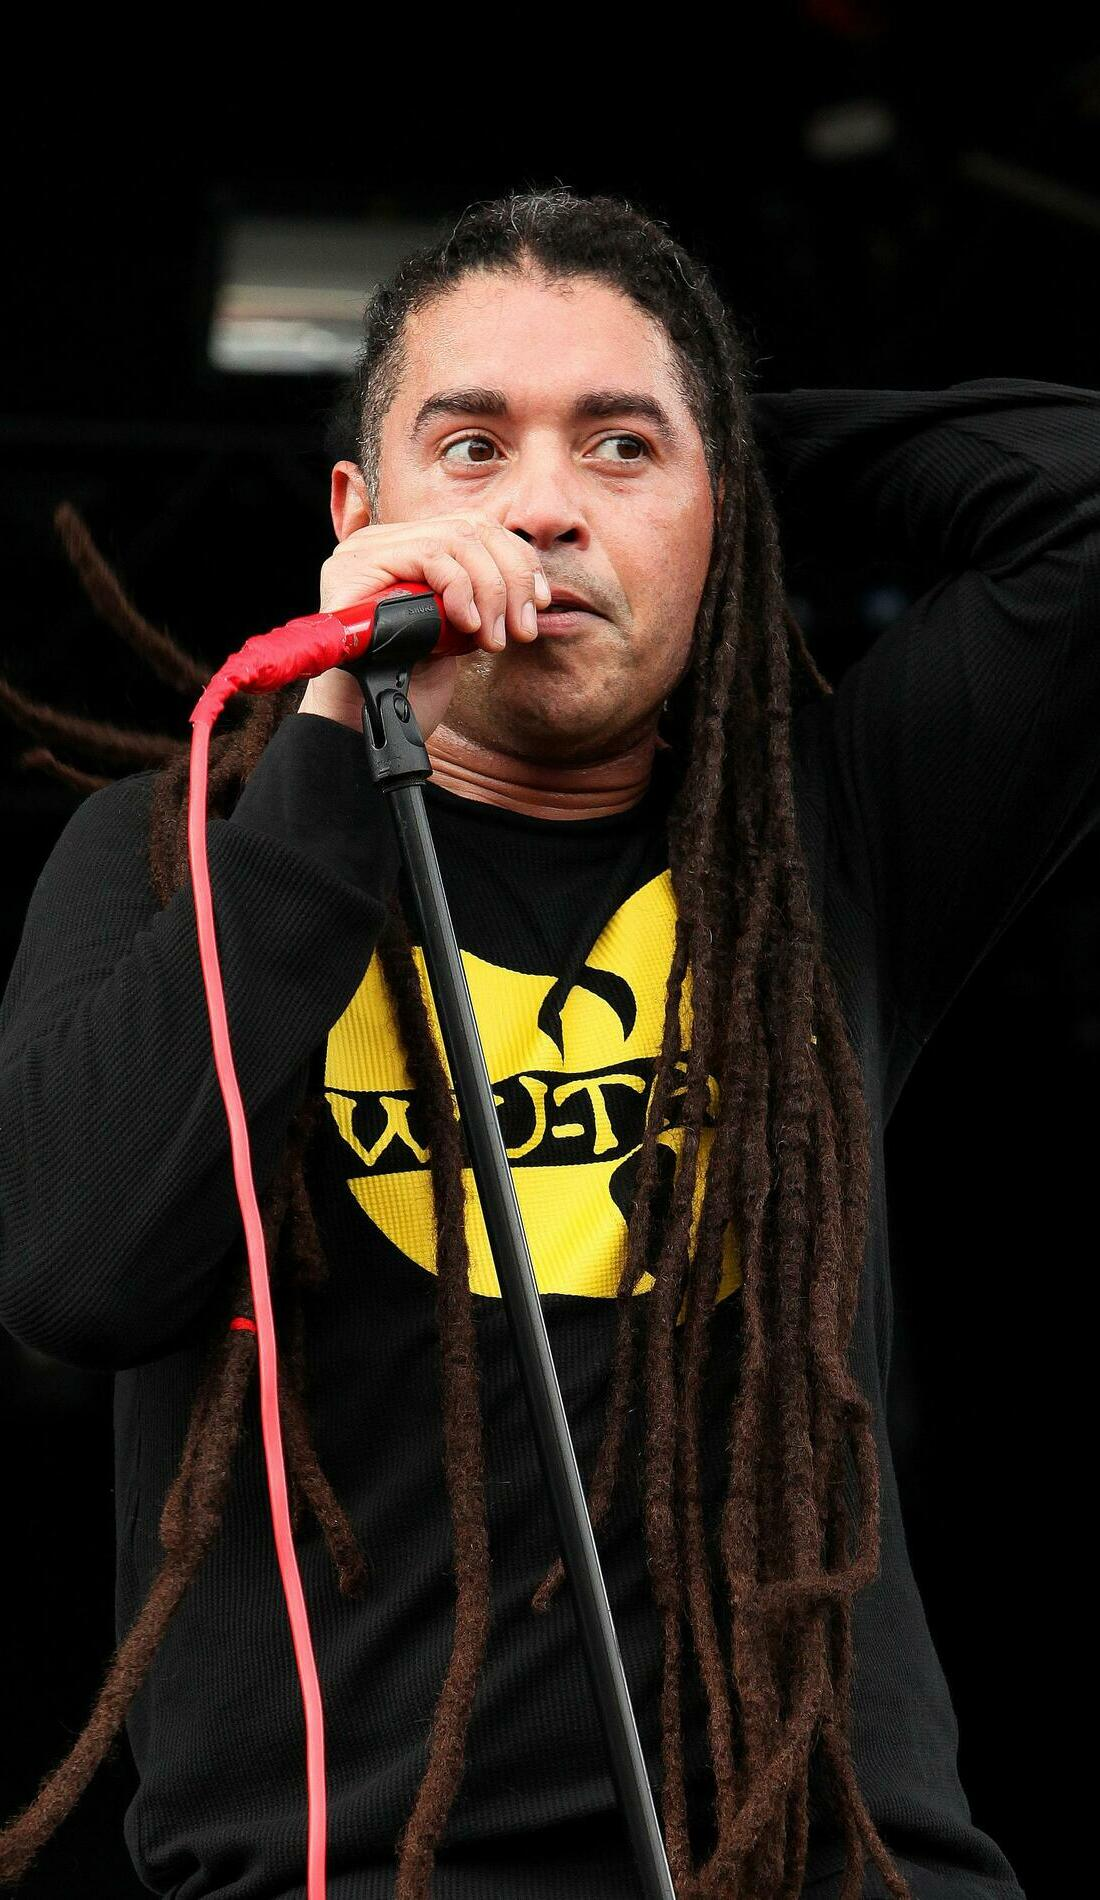 A Nonpoint live event